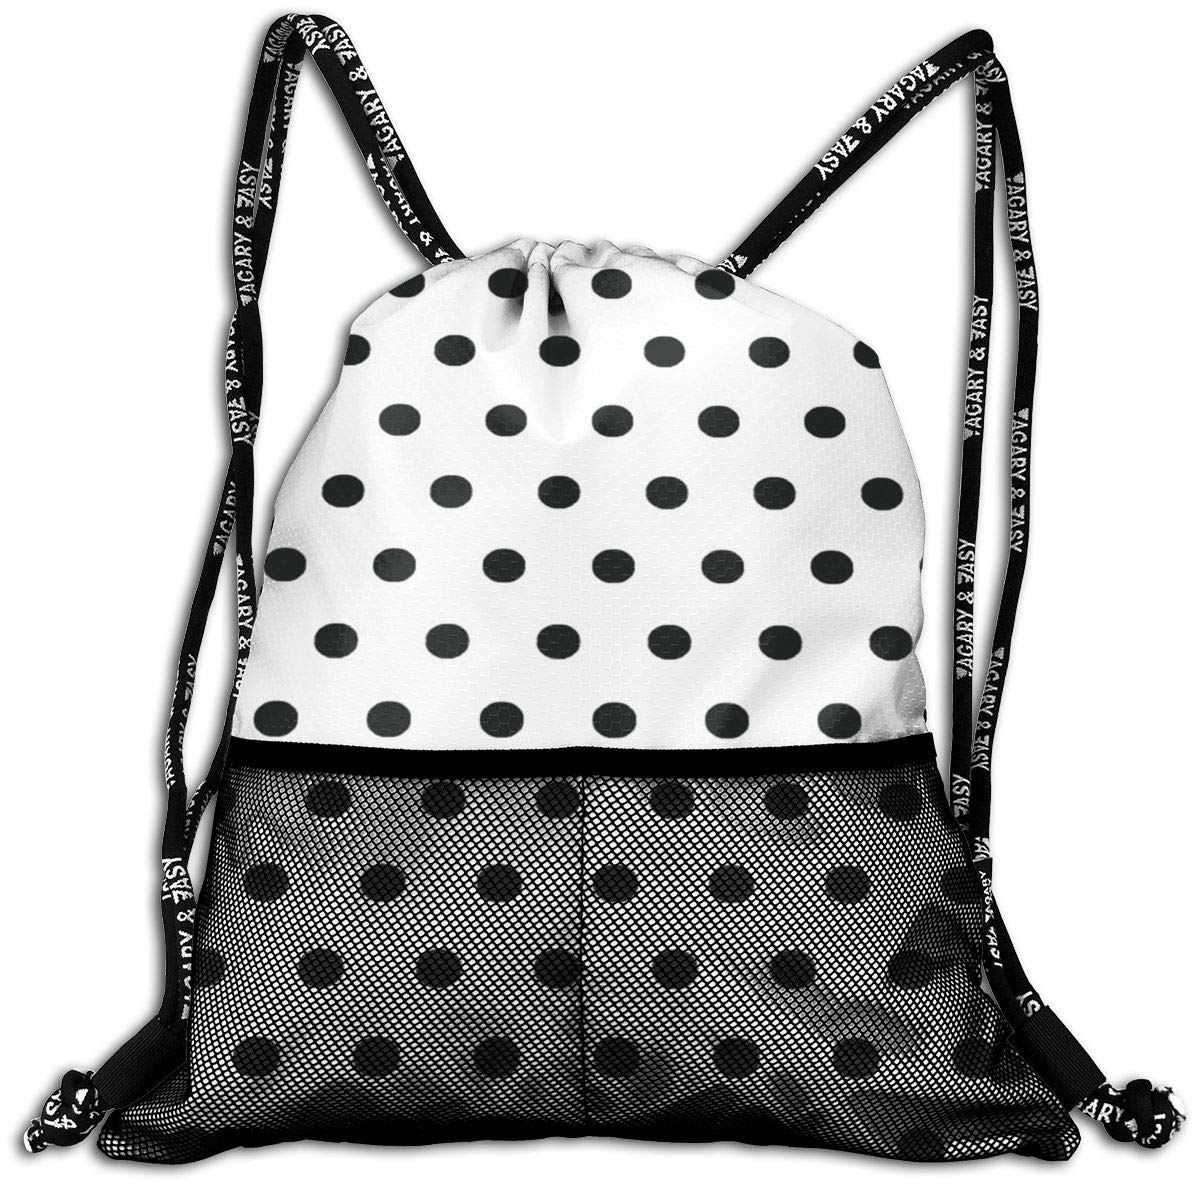 7af311fa7 Amazon.com | Drawstring Bag Classic Black White Polka Dot Womens Gym  Backpack Custom Personalized Mens Travel Canvas Bags For Unisex | Drawstring  Bags